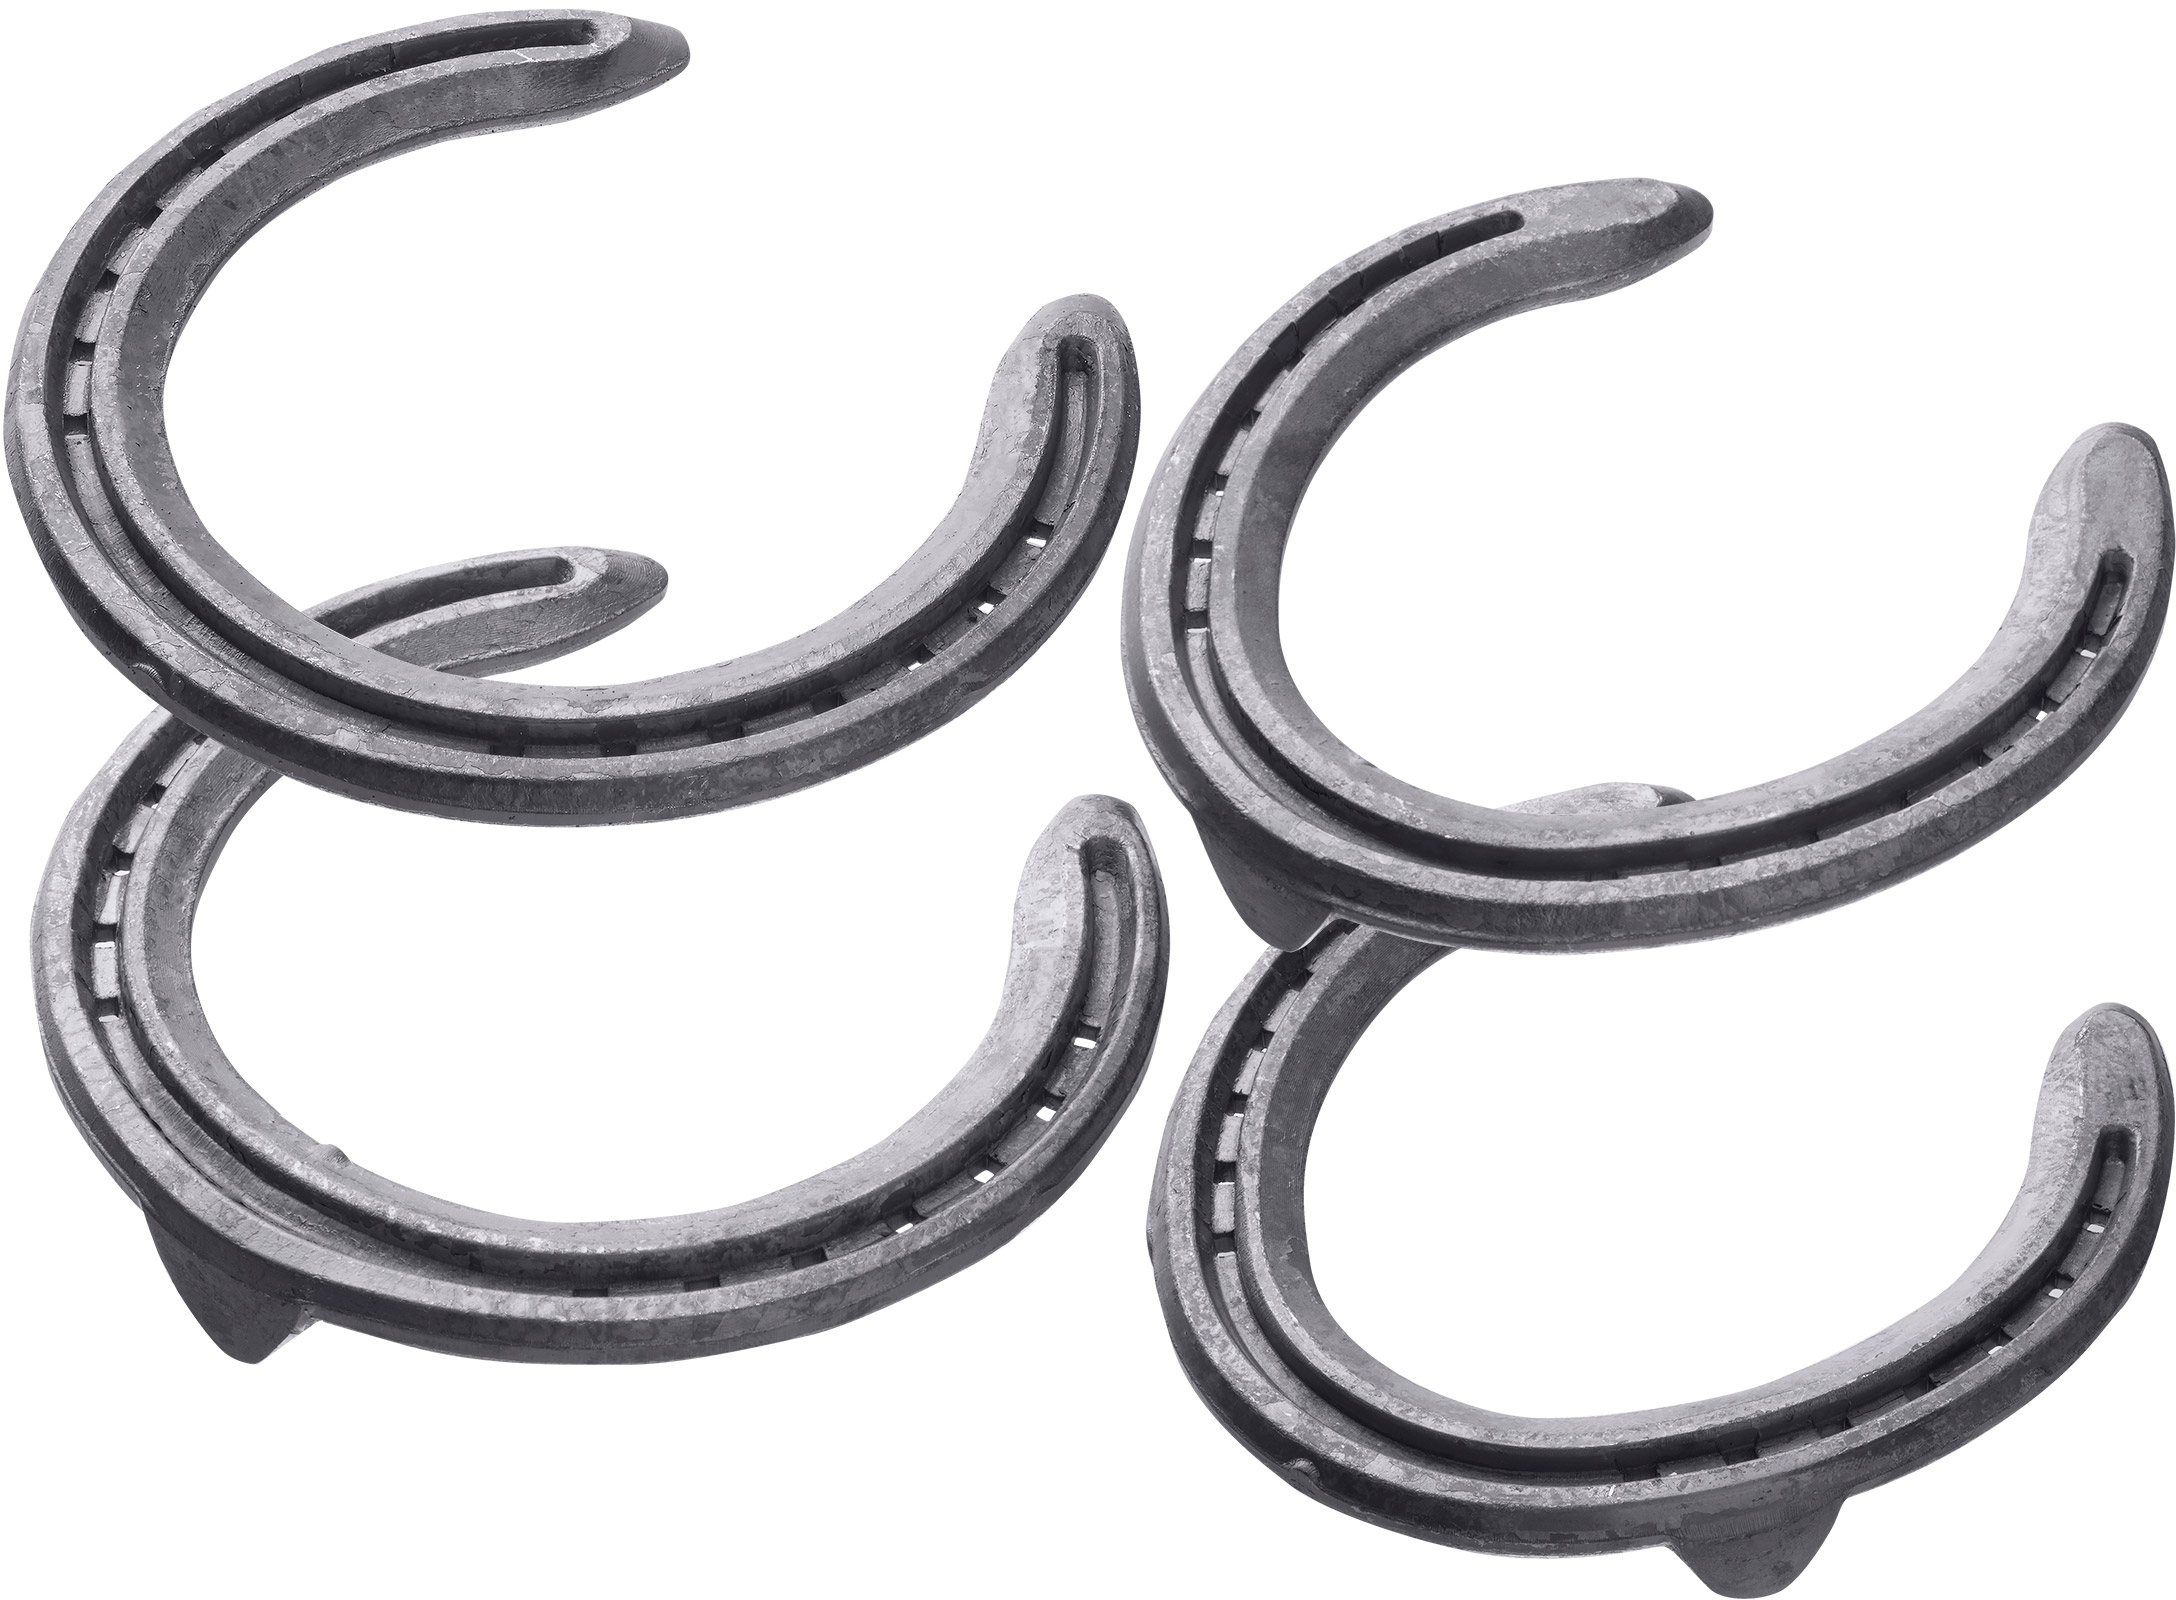 St. Croix Concorde Steel horseshoes, front unclipped and toe clip, hind toe clip and side clips, bottom side view